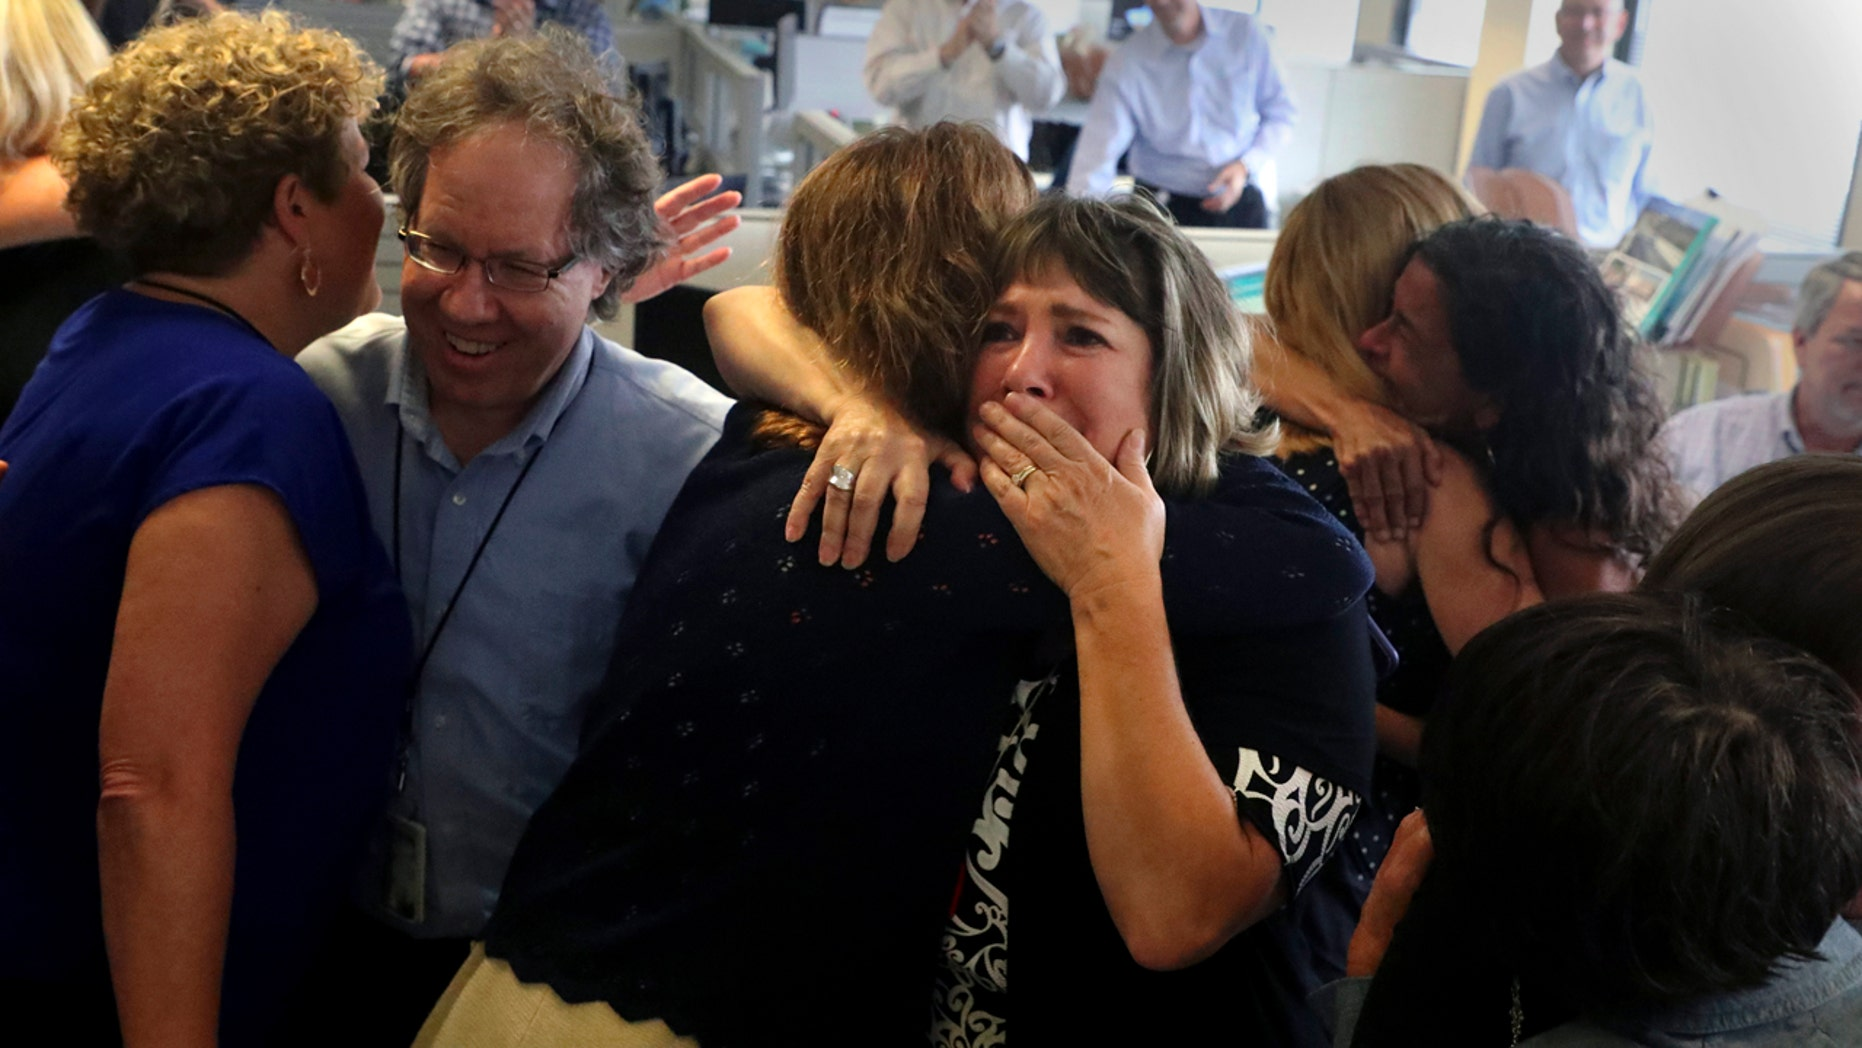 South Florida Sun Sentinel staffers react after winning the Pulitzer Prize for Public Service Monday for its coverage of the Parkland school shooting. (Carline Jean/South Florida Sun-Sentinel via AP)